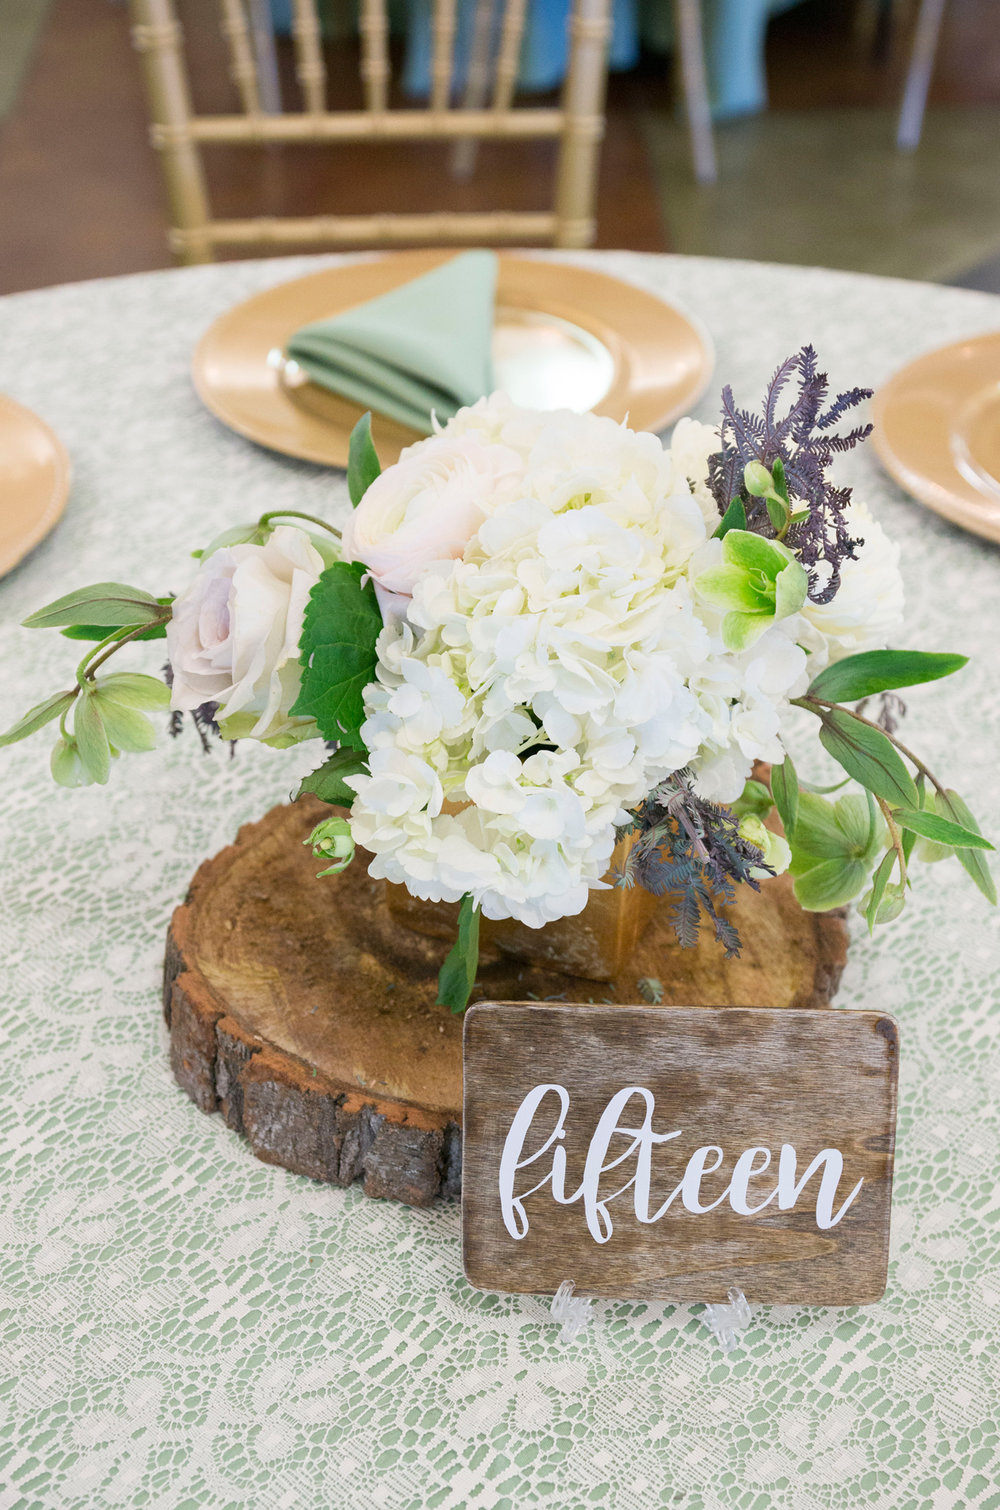 A Rustic-Vintage Glam McCoy Equestrian Center Wedding - Peterson Design & Photography